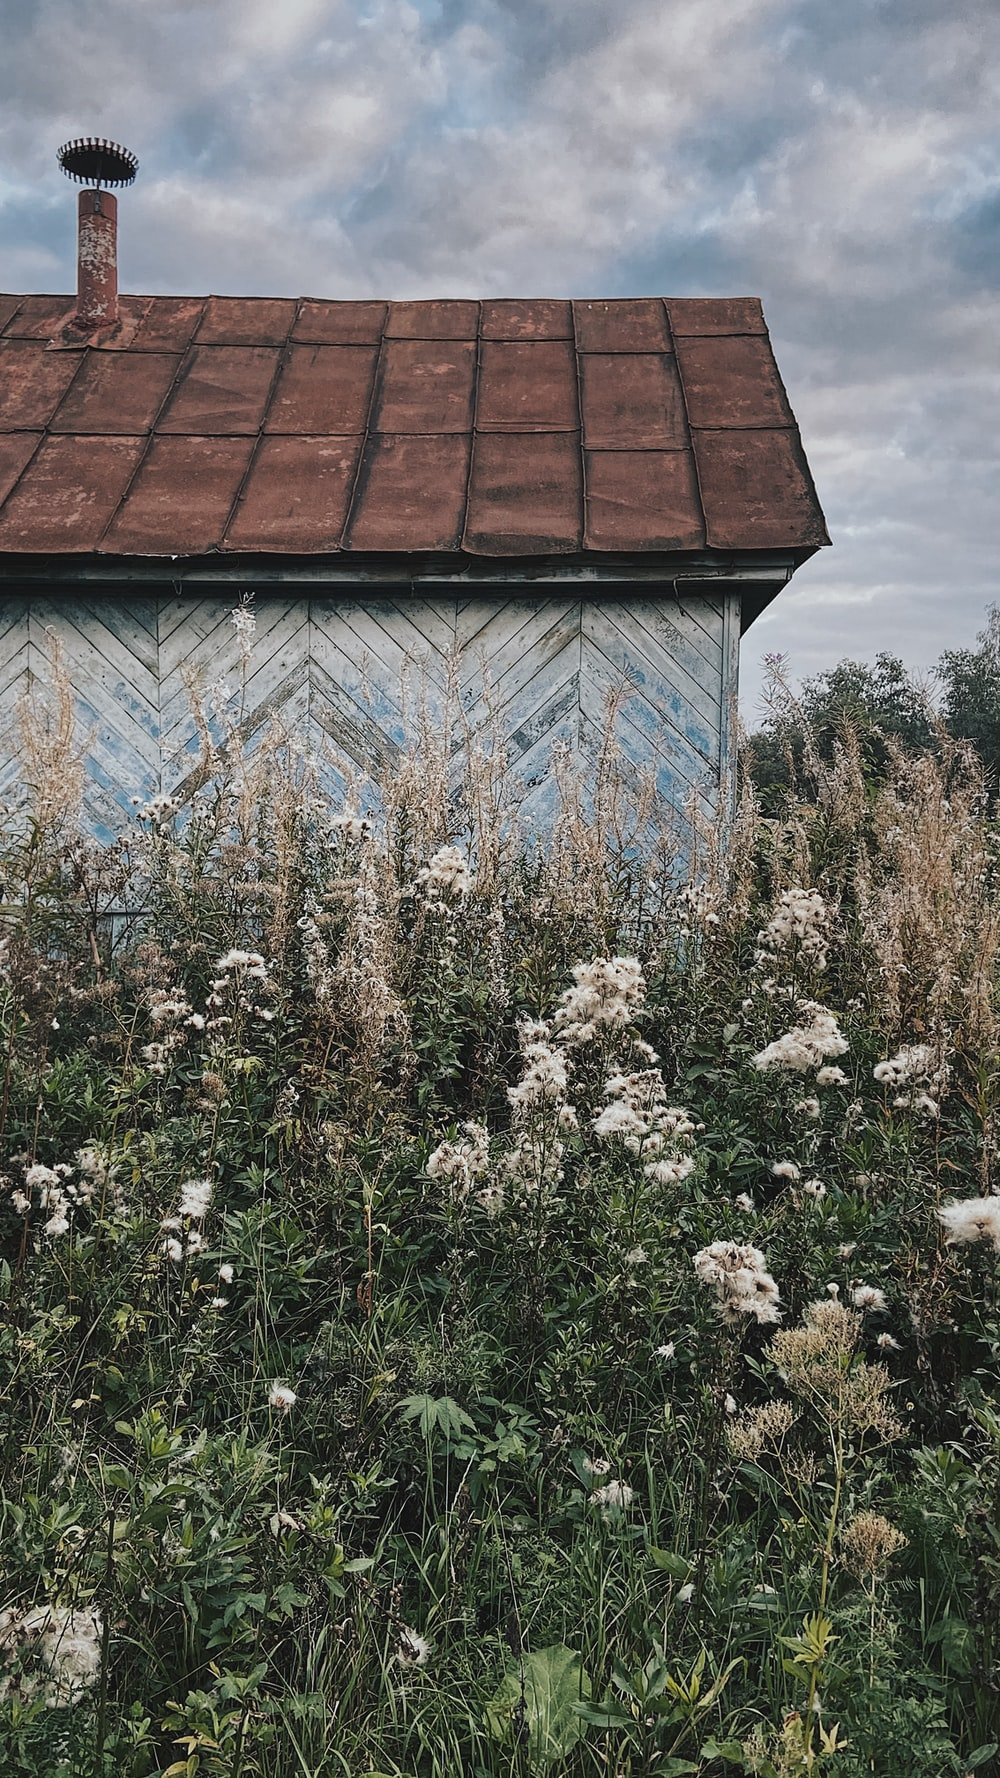 brown roof with white flowers on roof